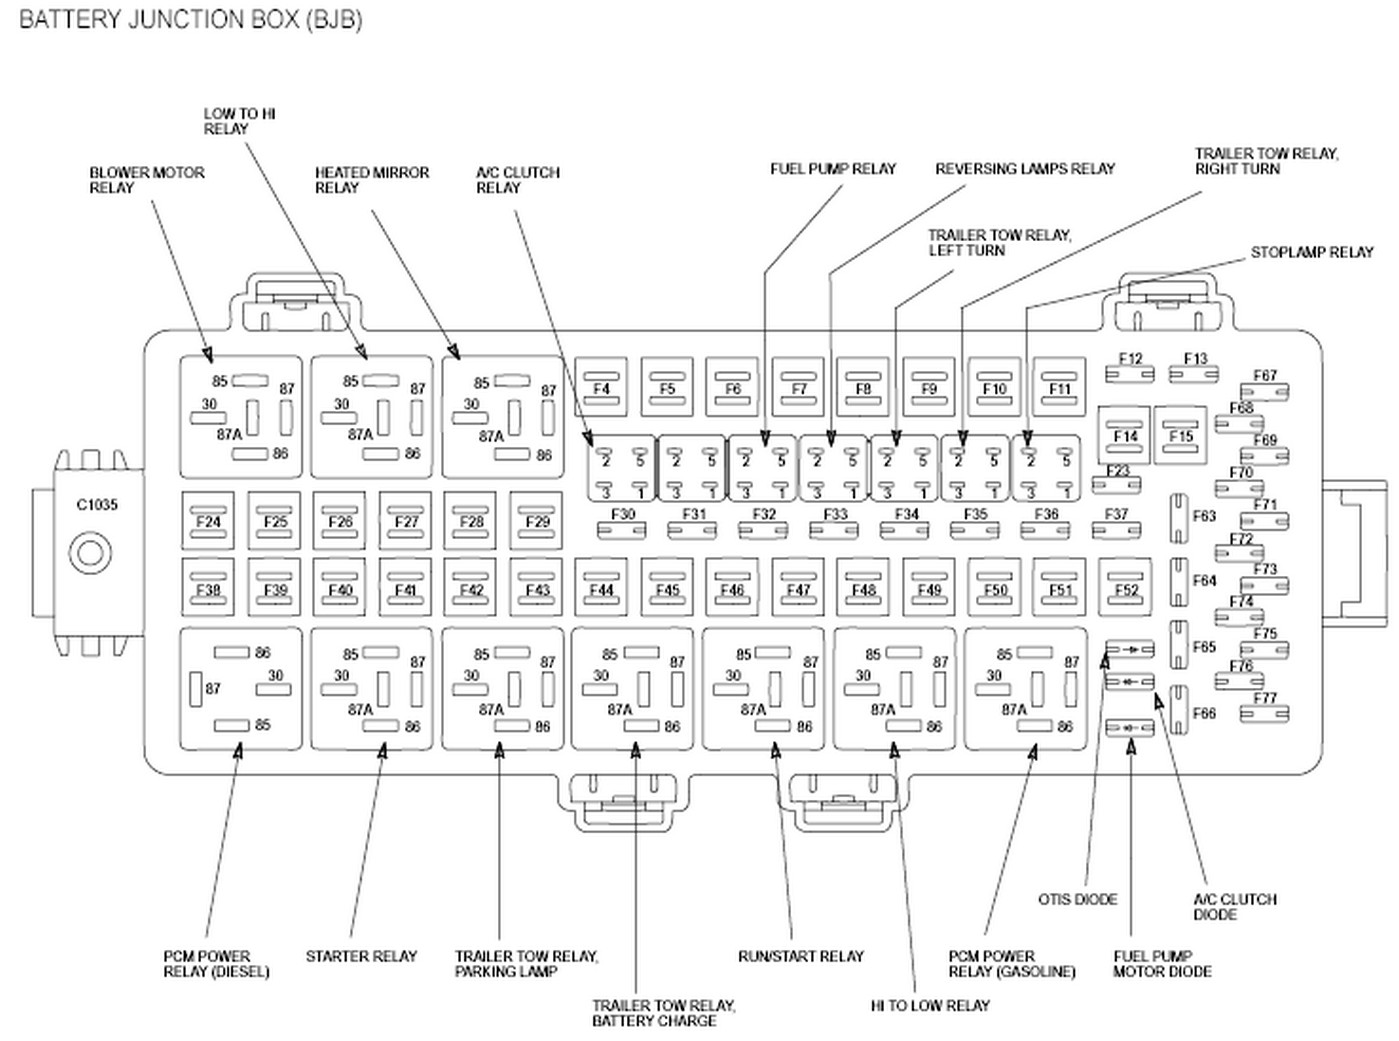 2011 ford f250 fuse box diagram Zoinyhu 2012 f250 fuse box location 2009 ford fusion fuse box diagram 2008 ford f250 super duty fuse box diagram at suagrazia.org